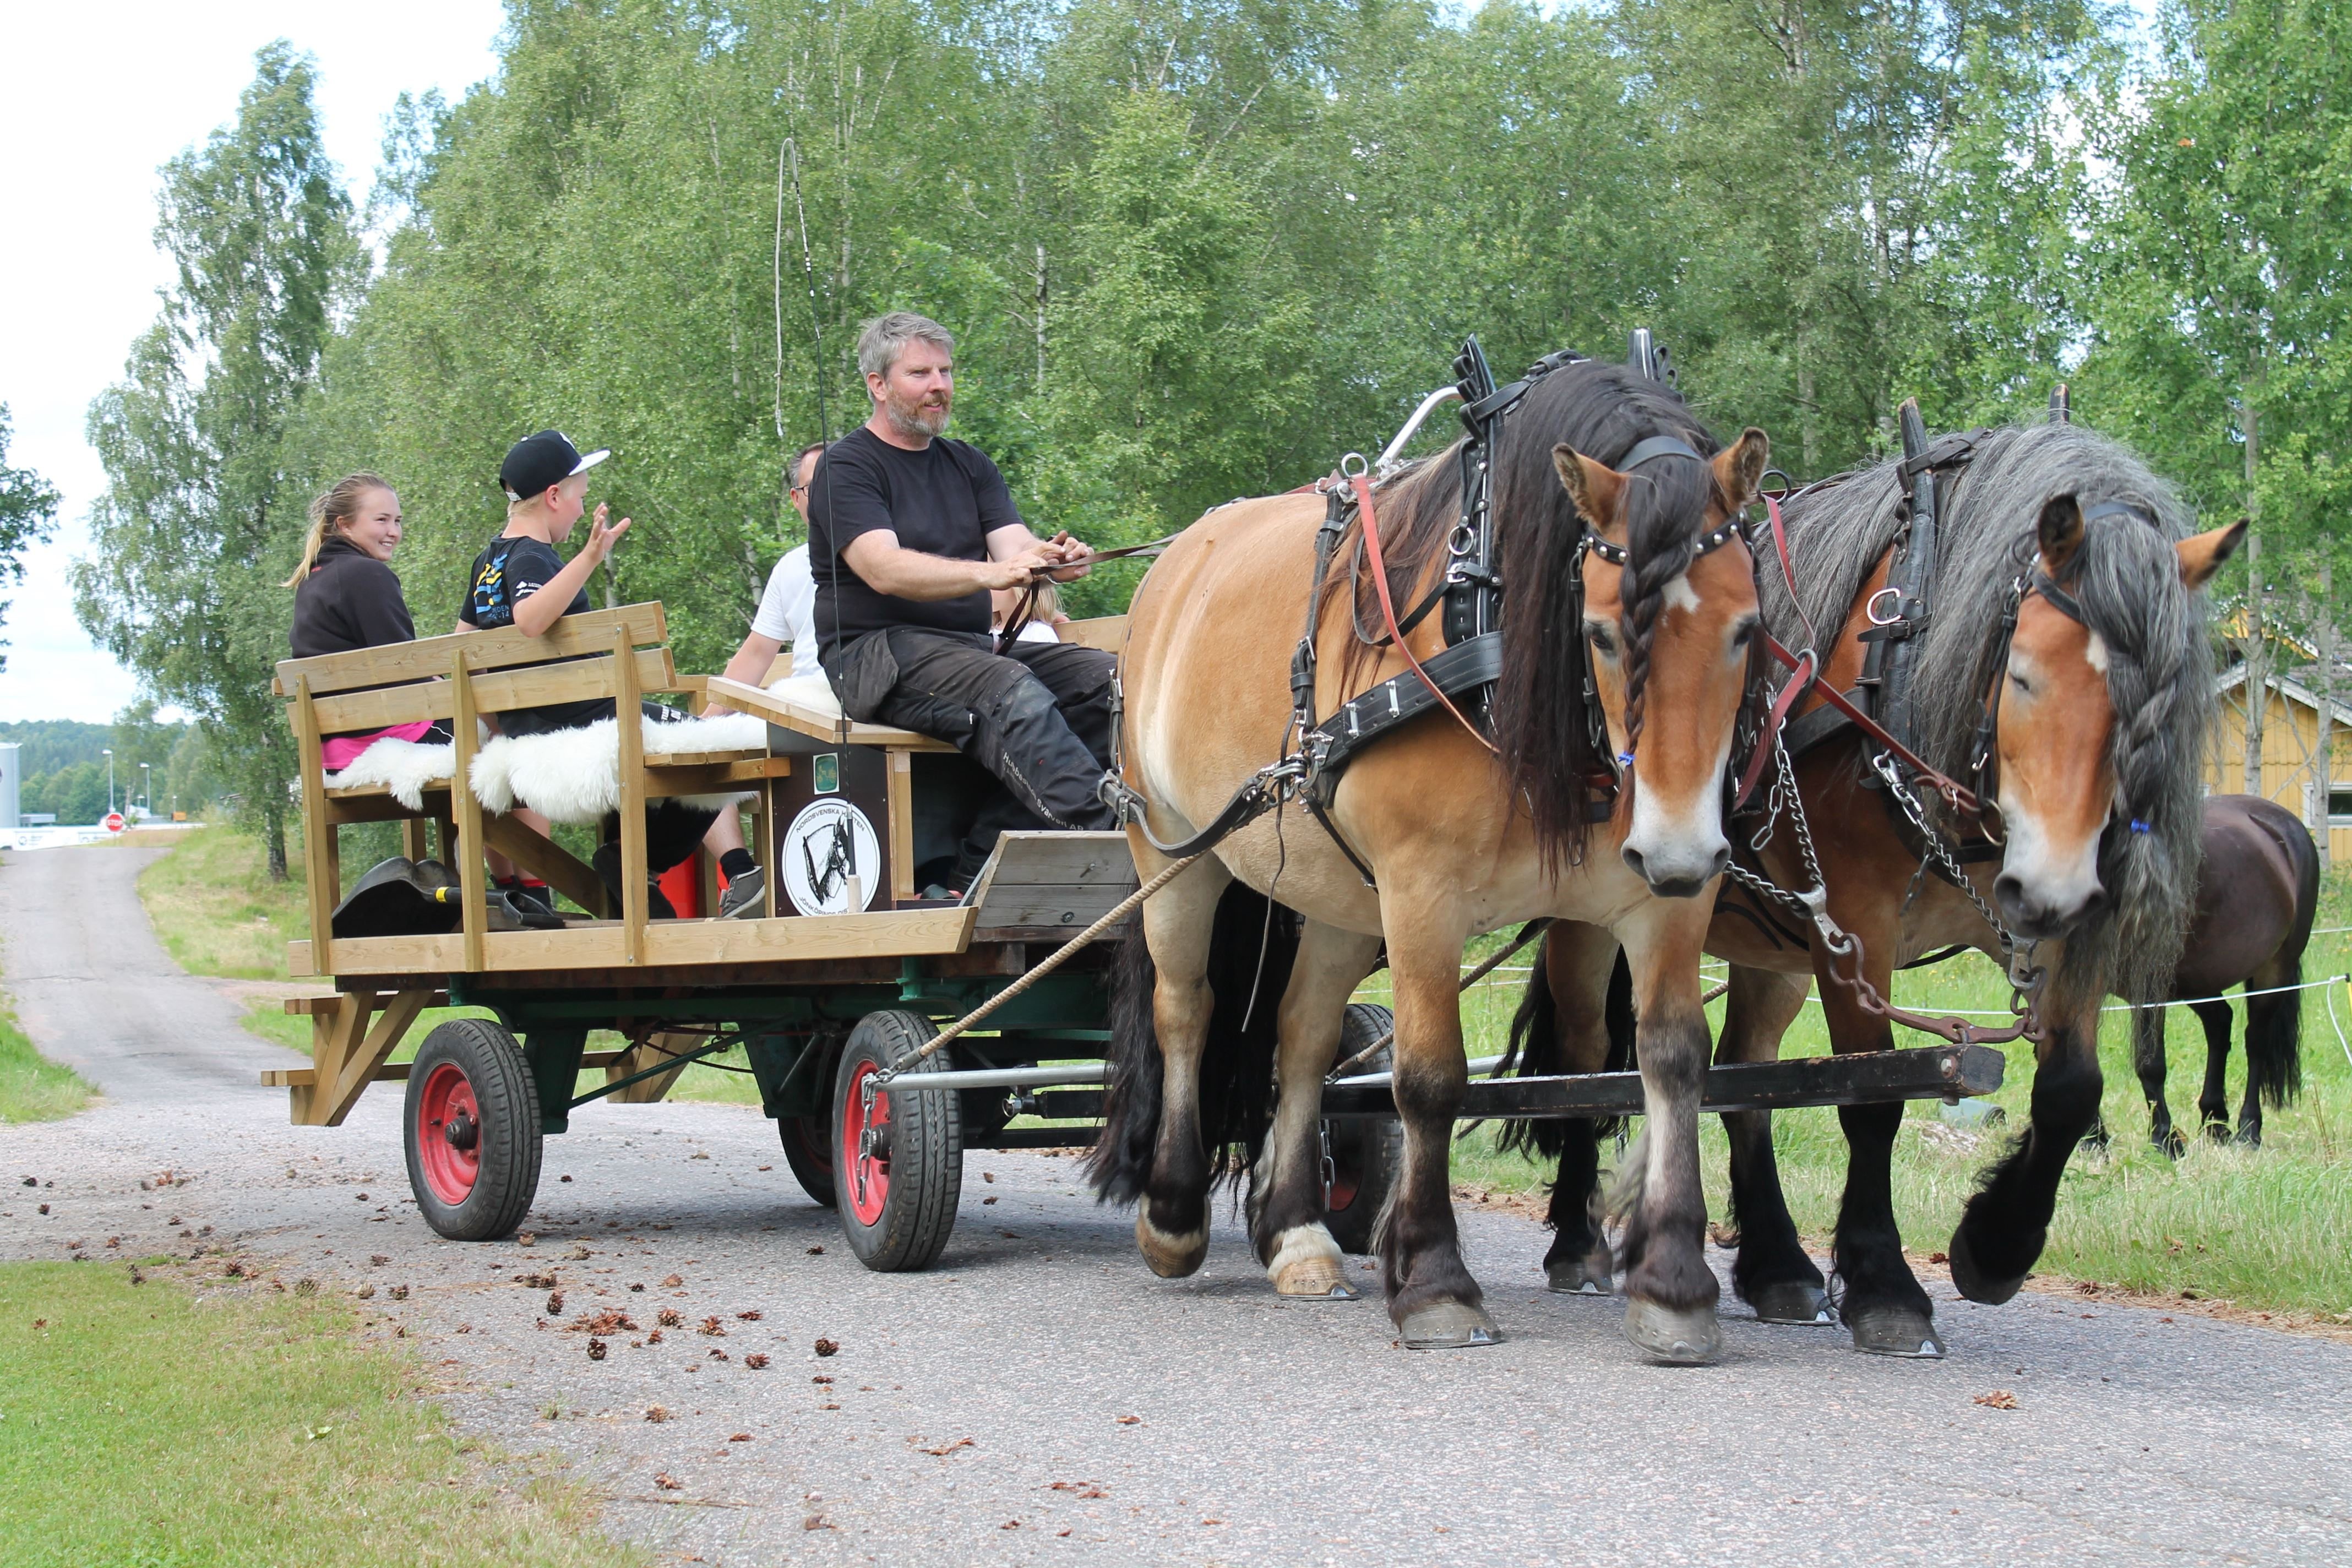 Karin Torstensson , Trip with horse and carriage in Fållinge